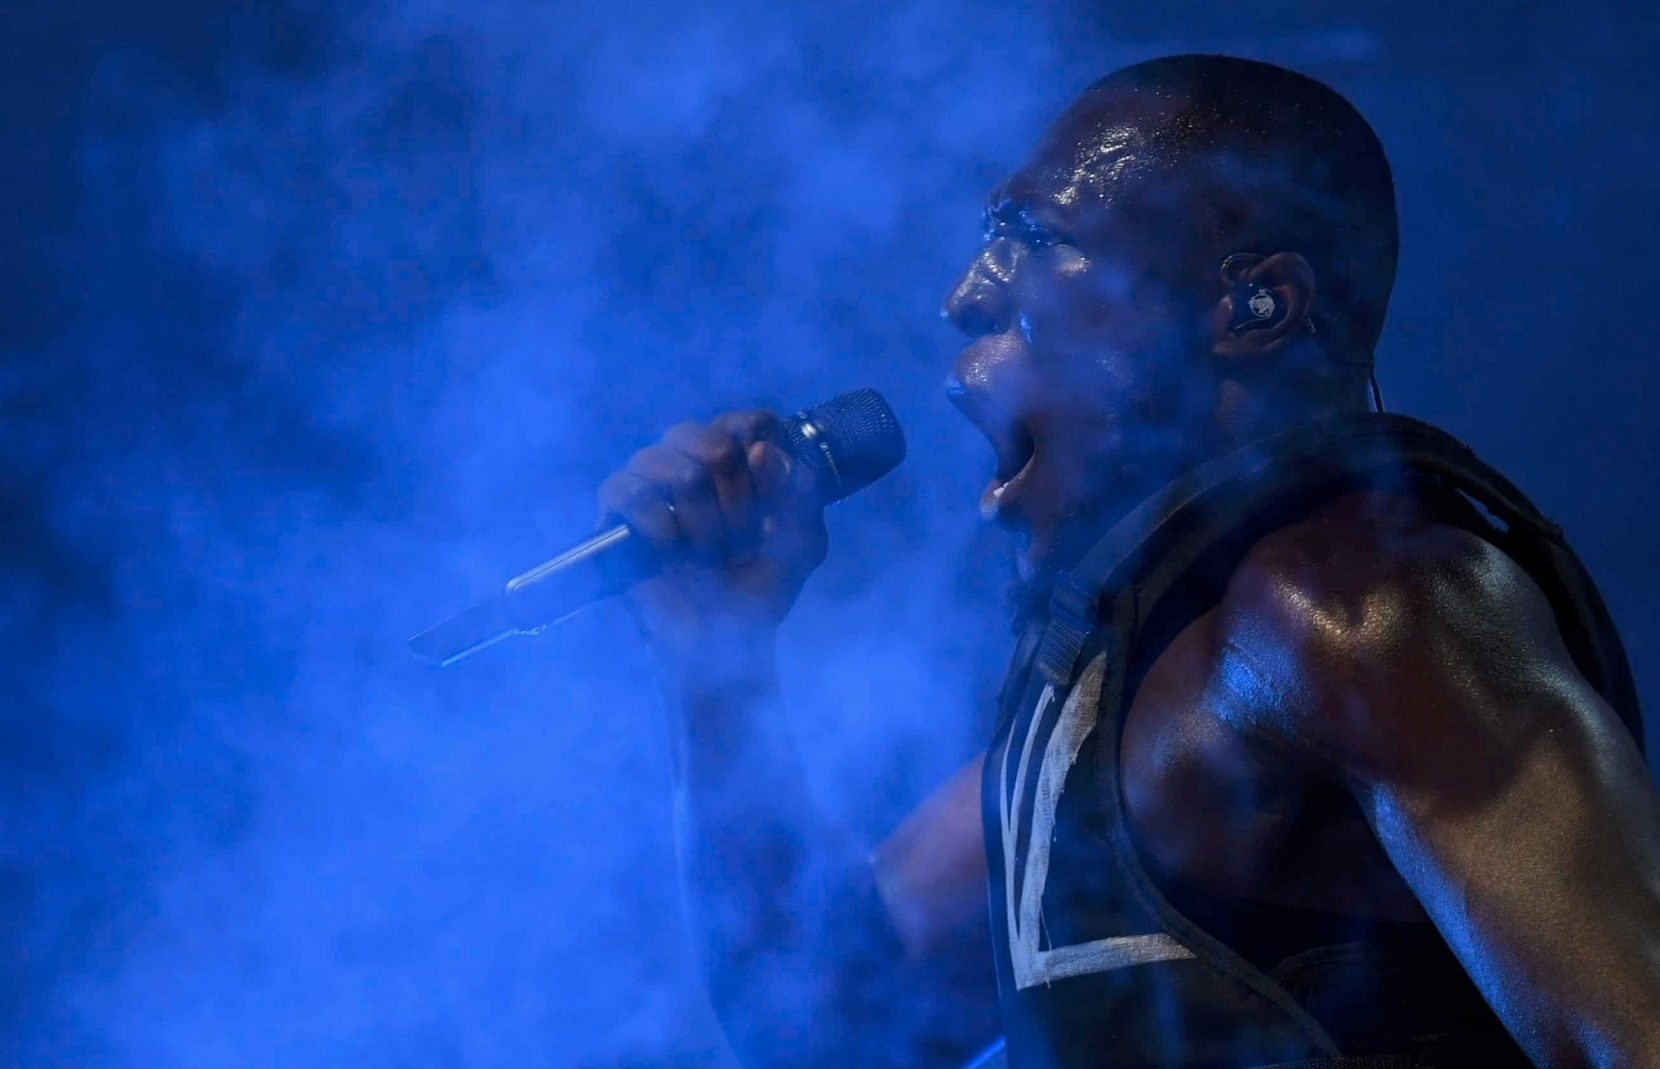 I love rap - I now conclude I don't love English rap, of any kind. © The Guardian